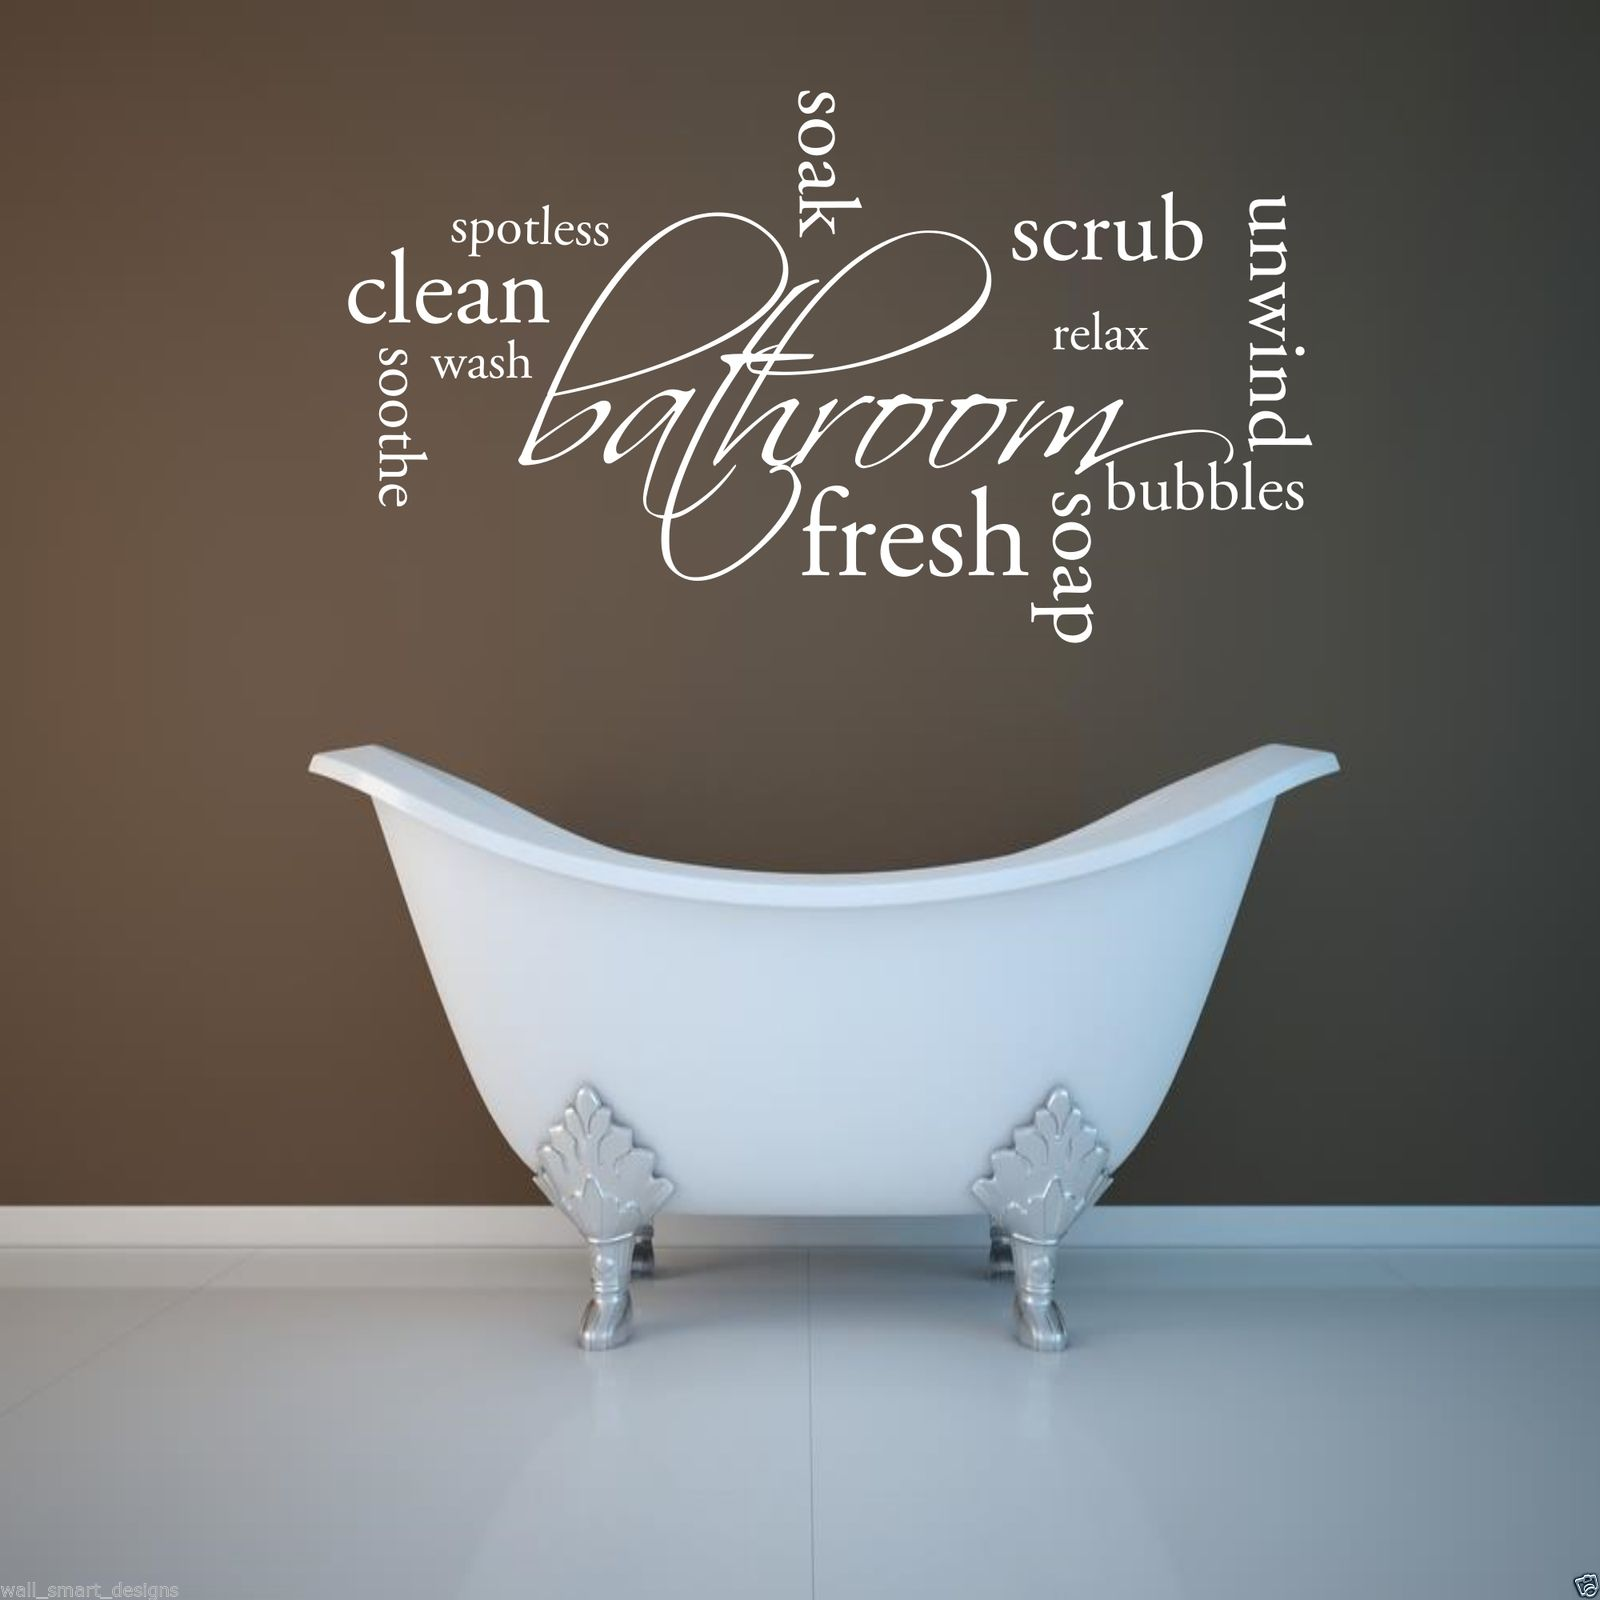 Ebay Wall Stickers Quotes Relax Soap Bathroom Wall Sticker Quote Decal Mural Stencil